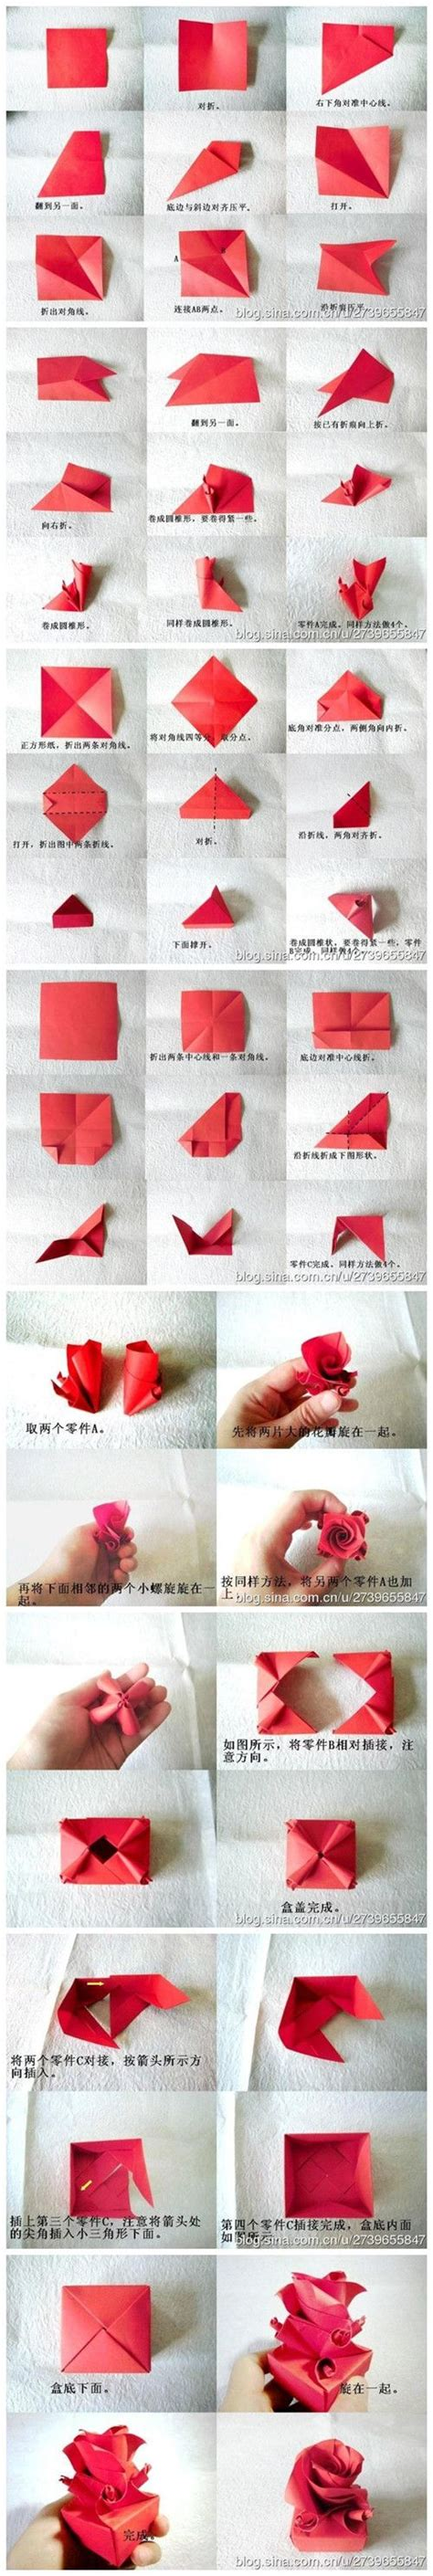 Paper Craft Tutorial - crafts valentines and origami paper on